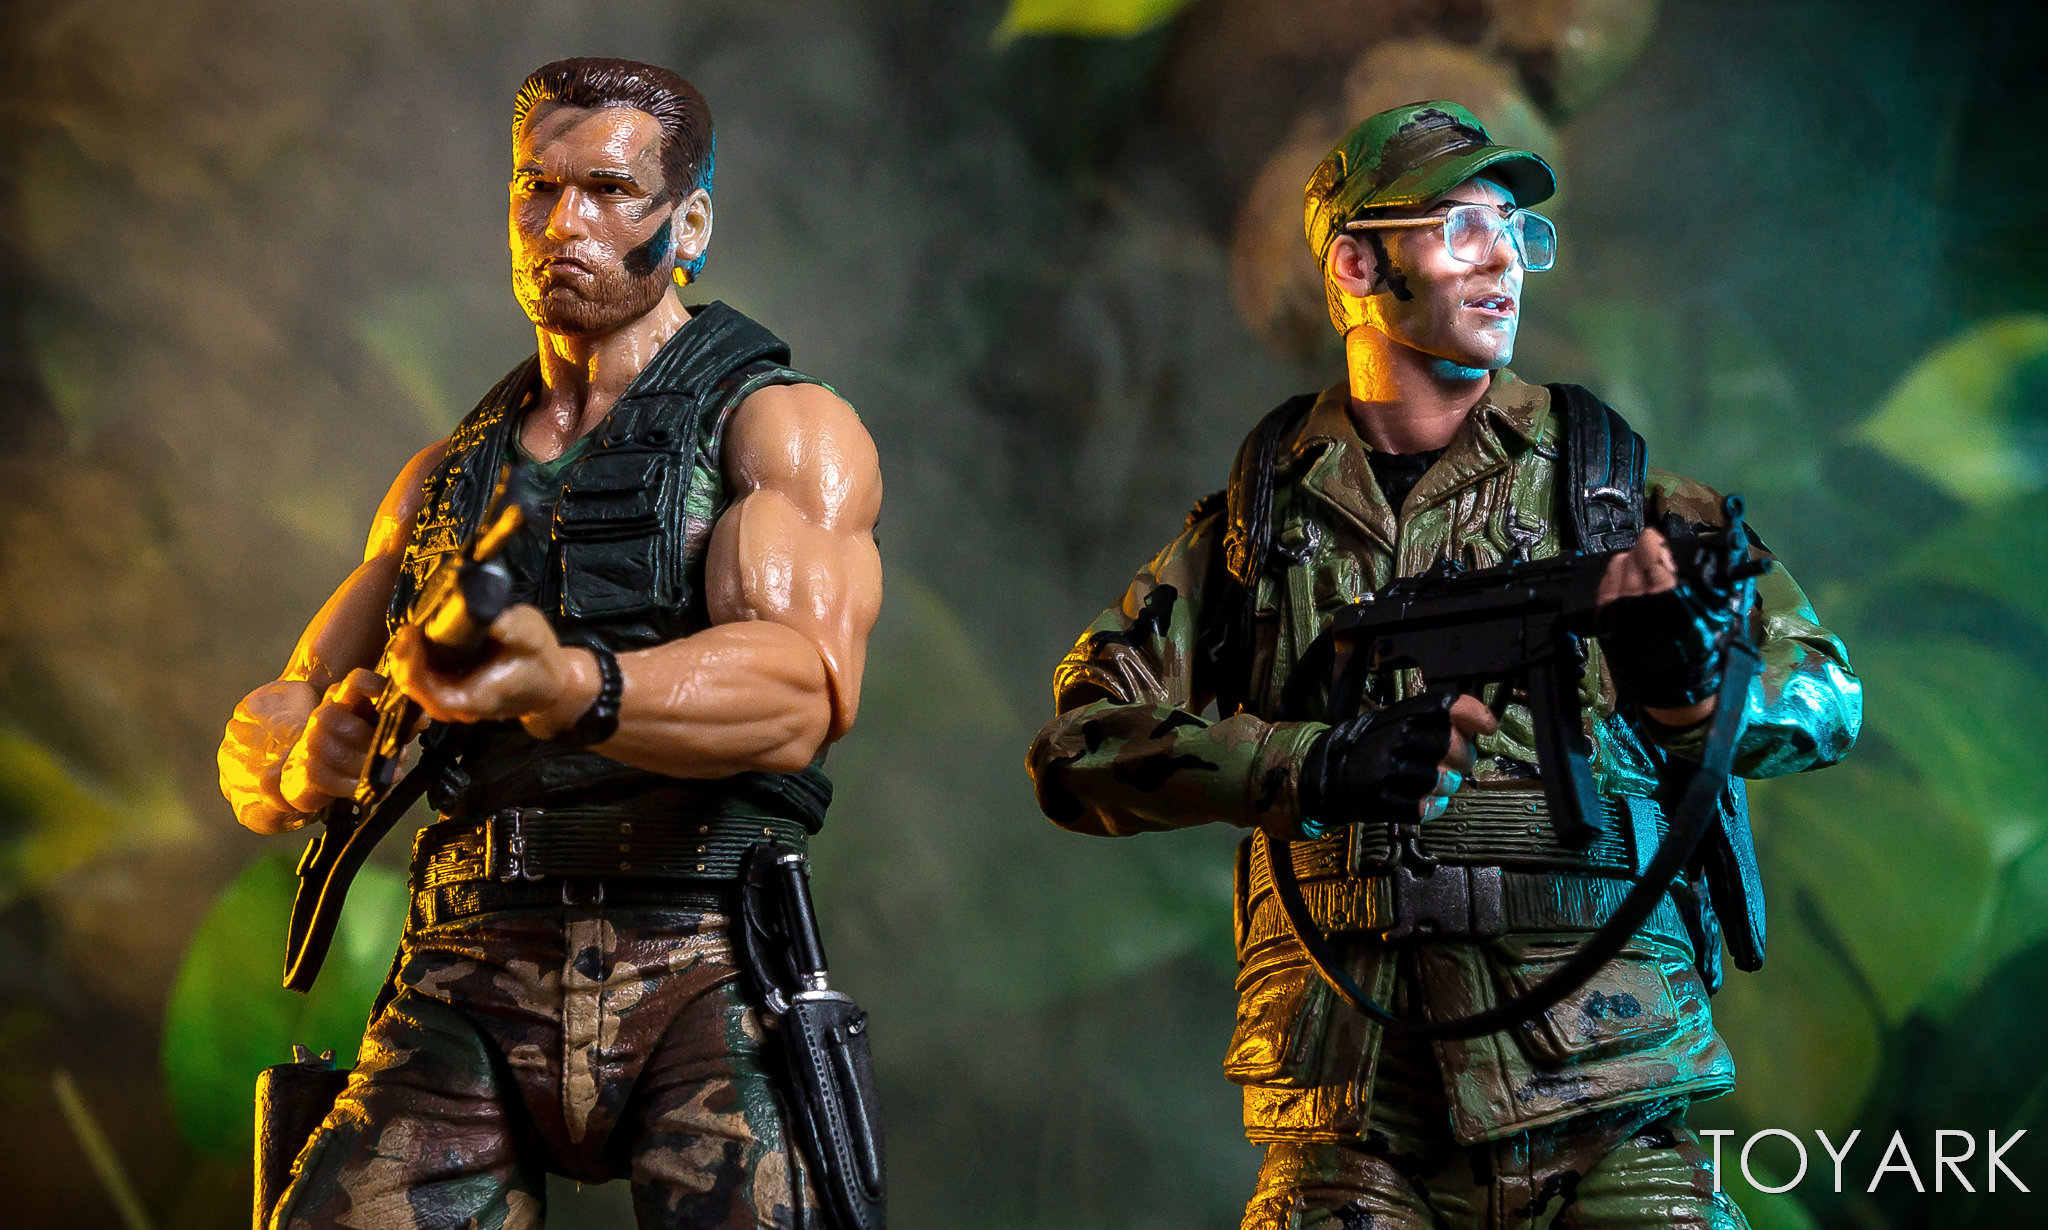 https://news.toyark.com/wp-content/uploads/sites/4/2018/07/NECA-SDCC2018-Predator-Hawkins-016.jpg